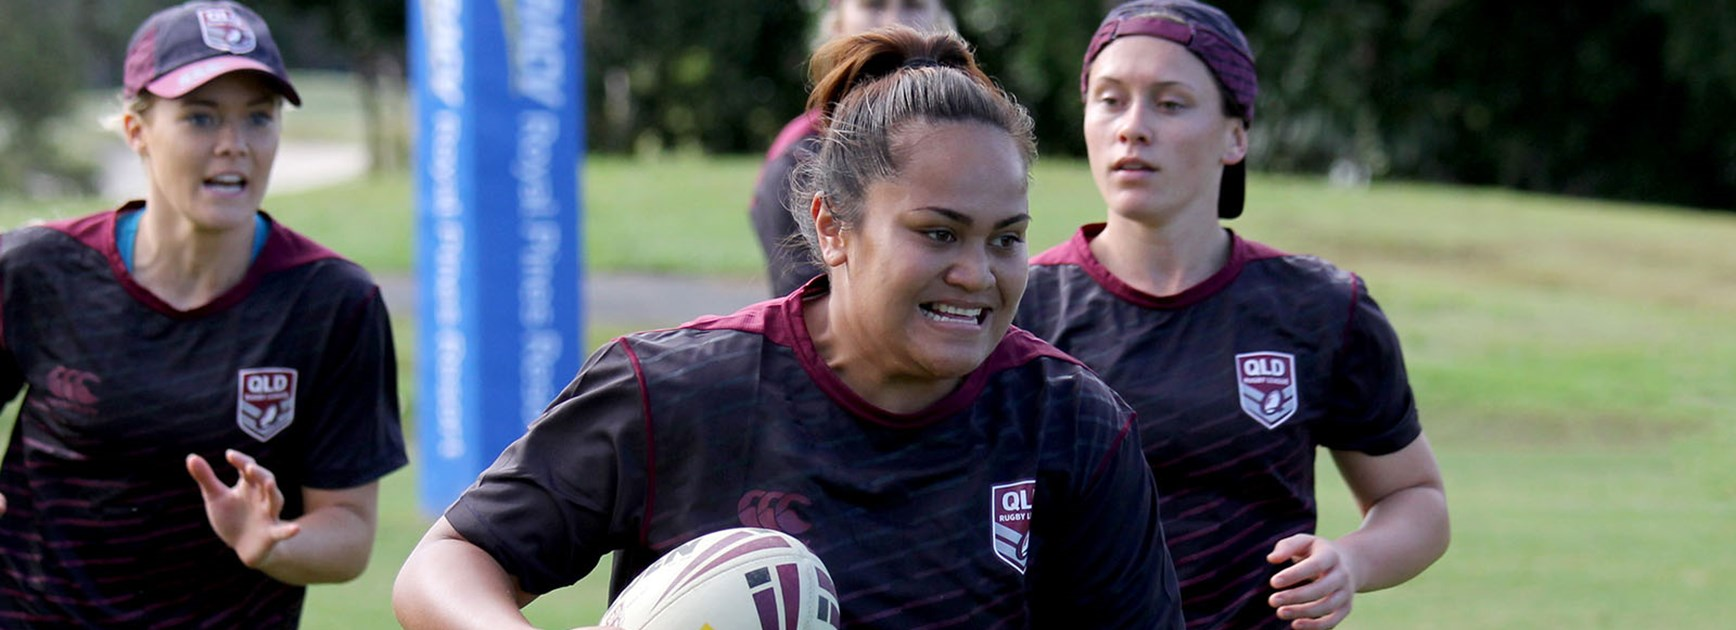 Jazymn Taumafai is excited to play her second game for Queensland on Saturday.